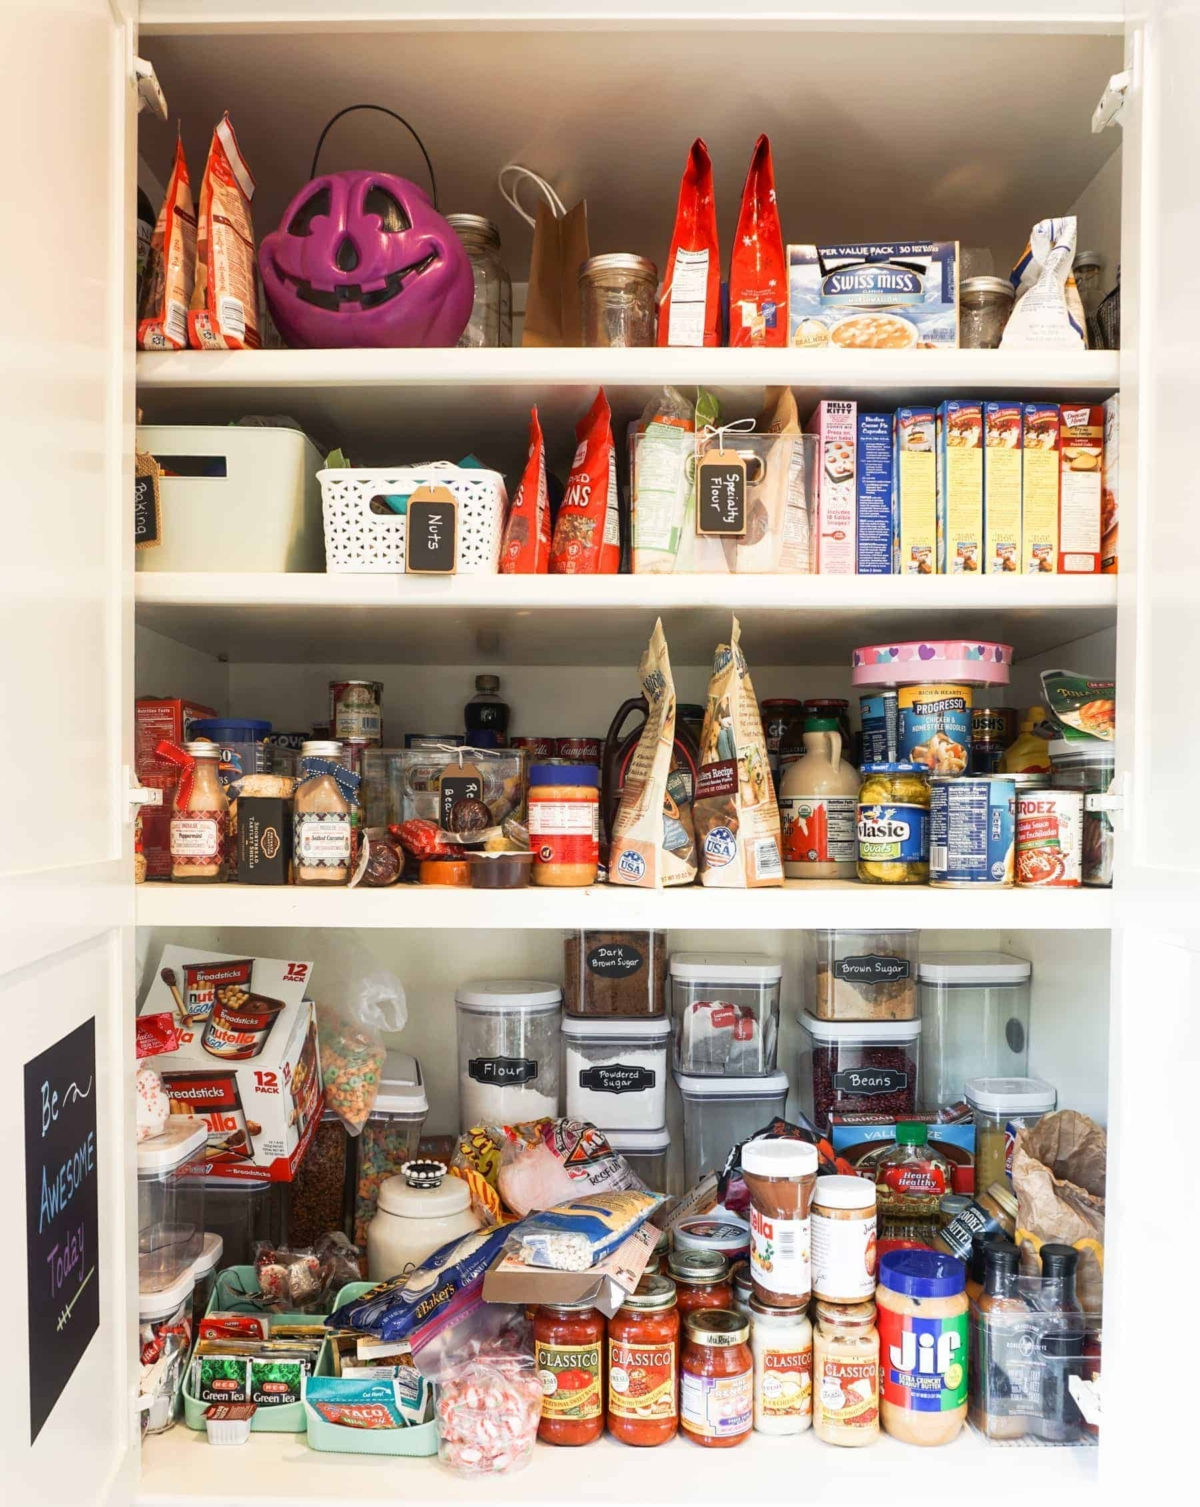 Cluttered Messy Kitchen Pantry